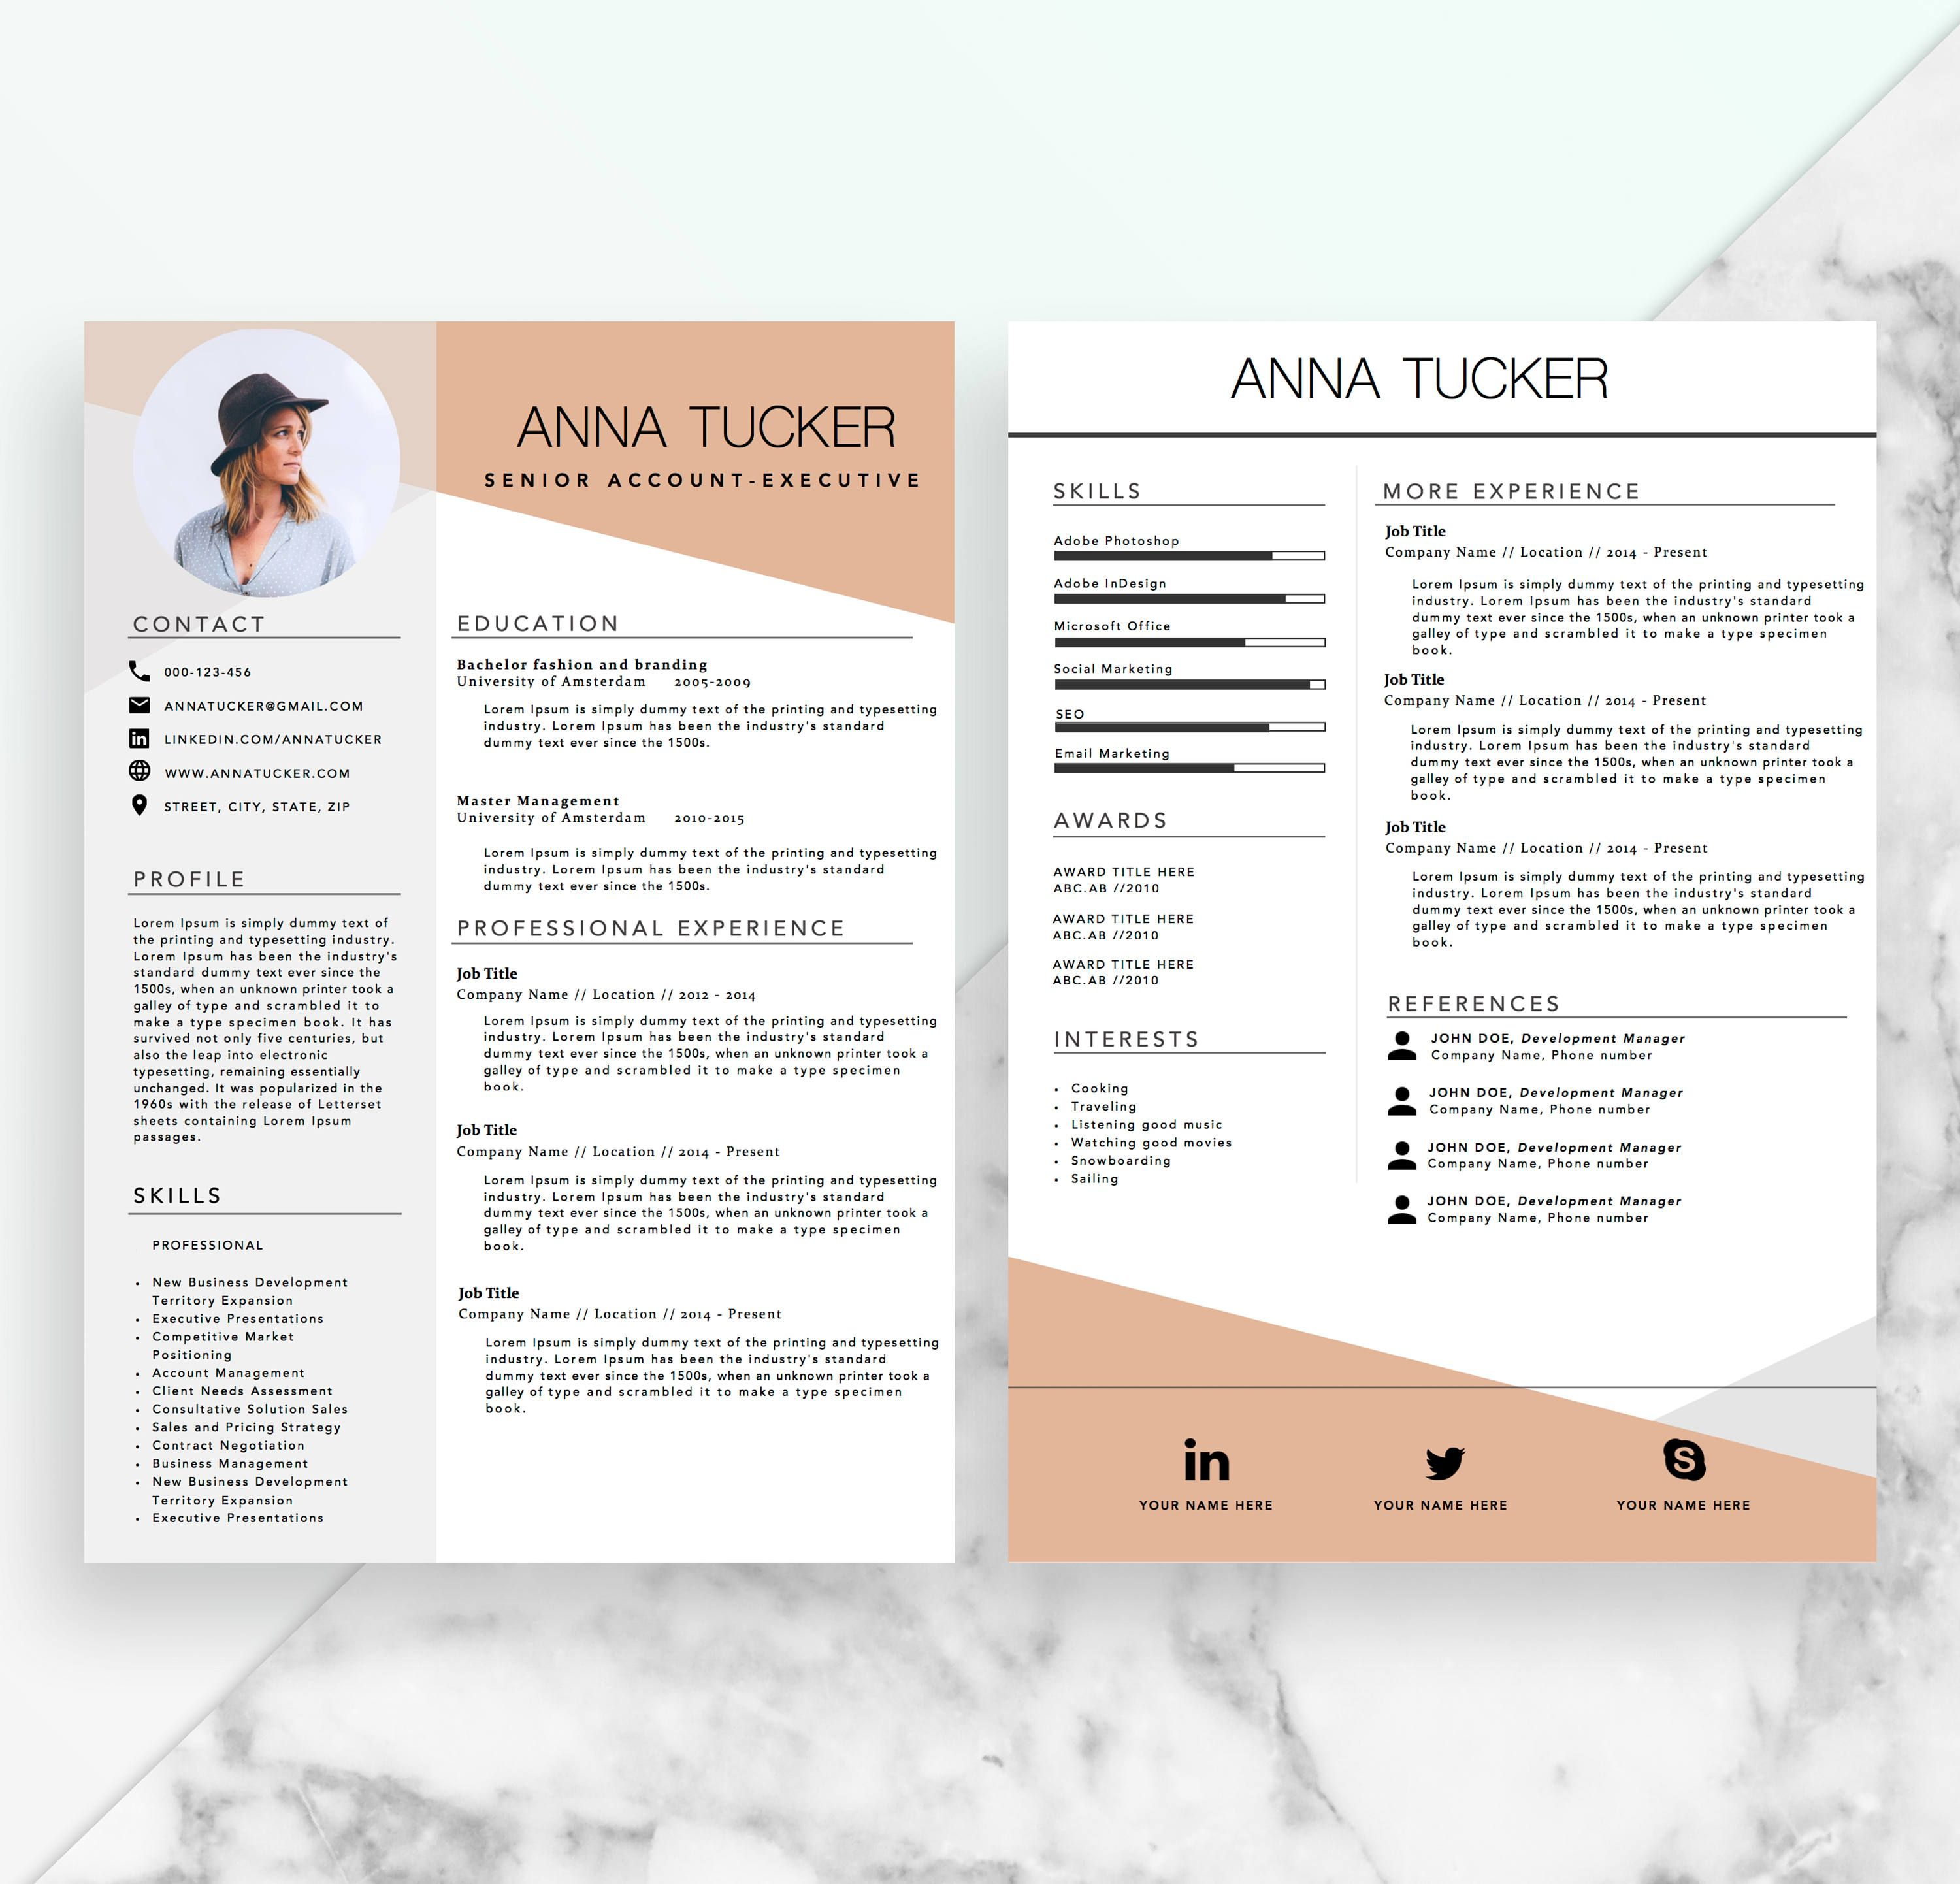 Modern Resume Template Cv Template Professional And Creative Resume Word Resume Instant Download Docx Cv Template Professional Modern Resume Template Resume Words